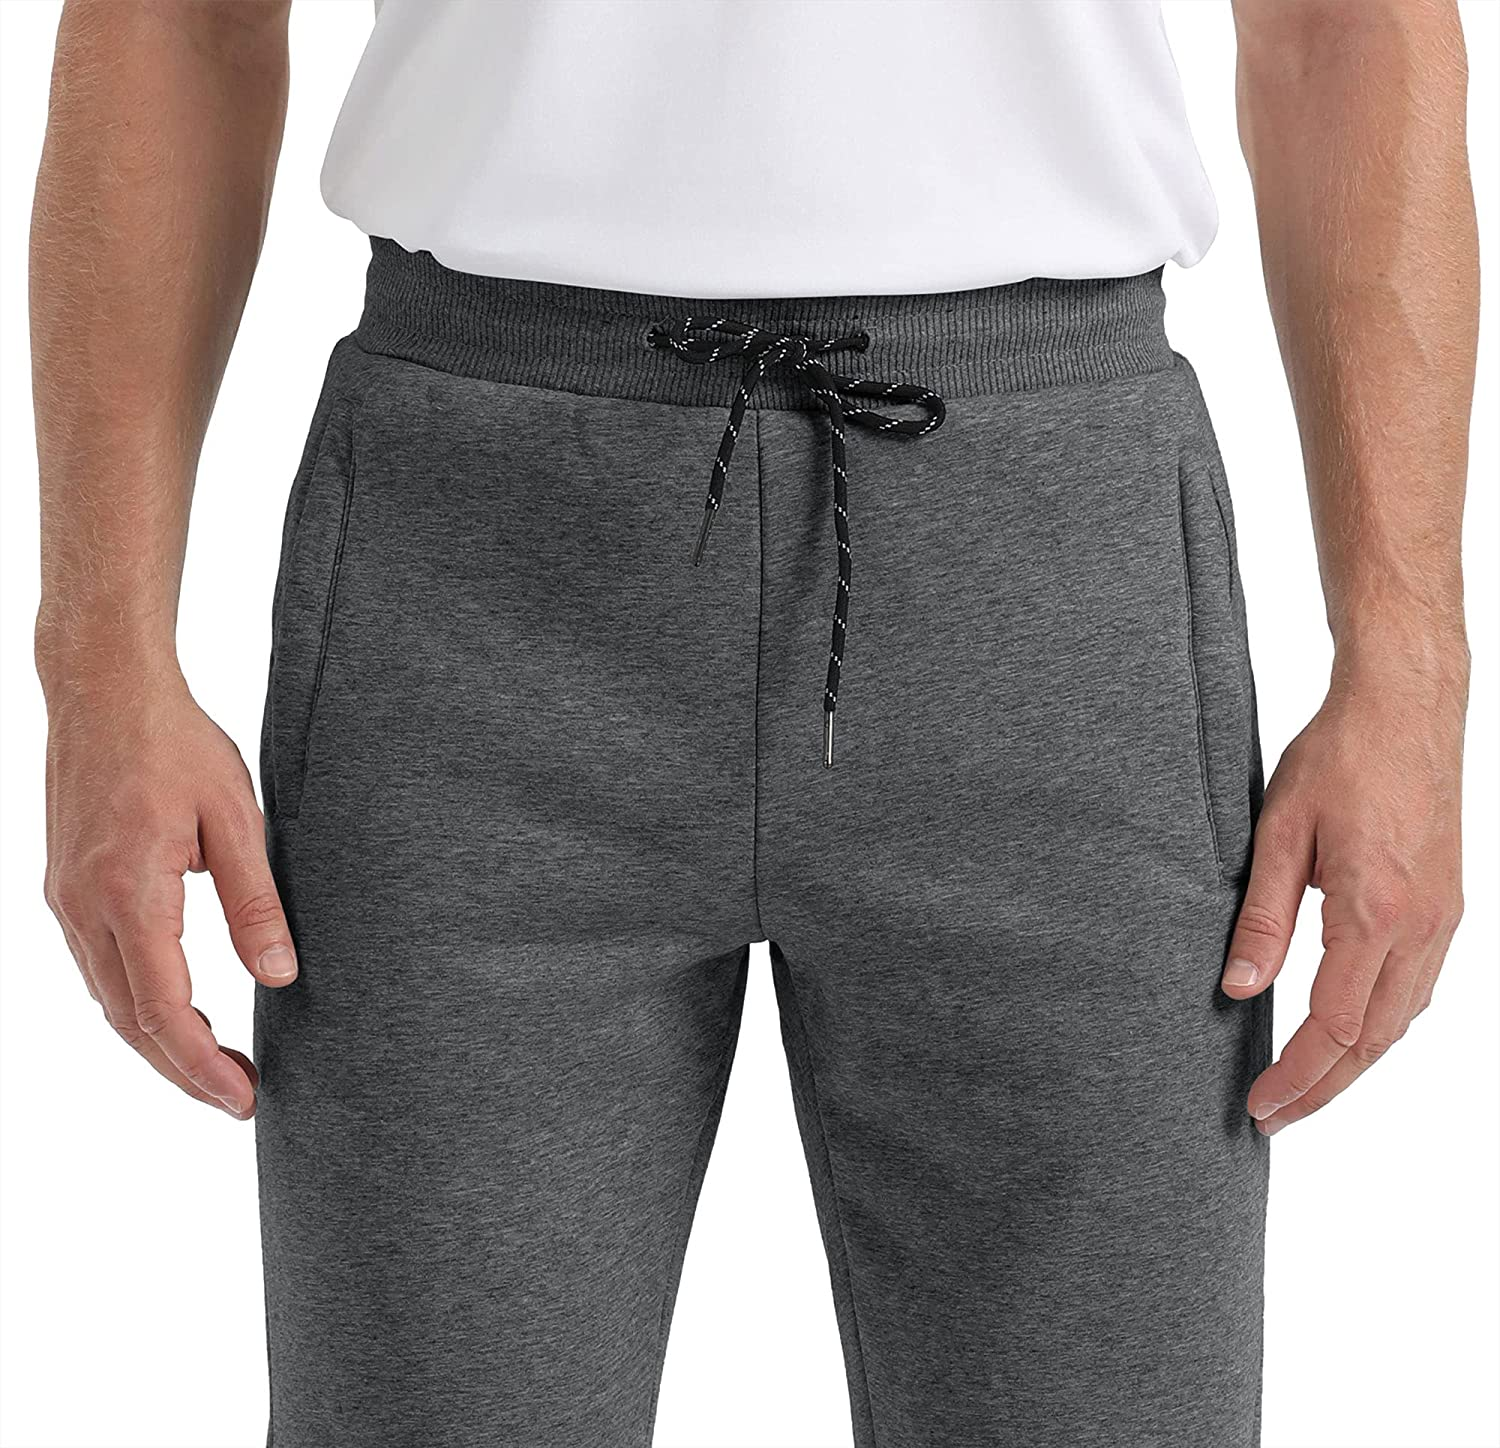 CRYSULLY Men's Winter Sherpa Lined Sweatpants Fleece Thermal Athletic Jogger Pants